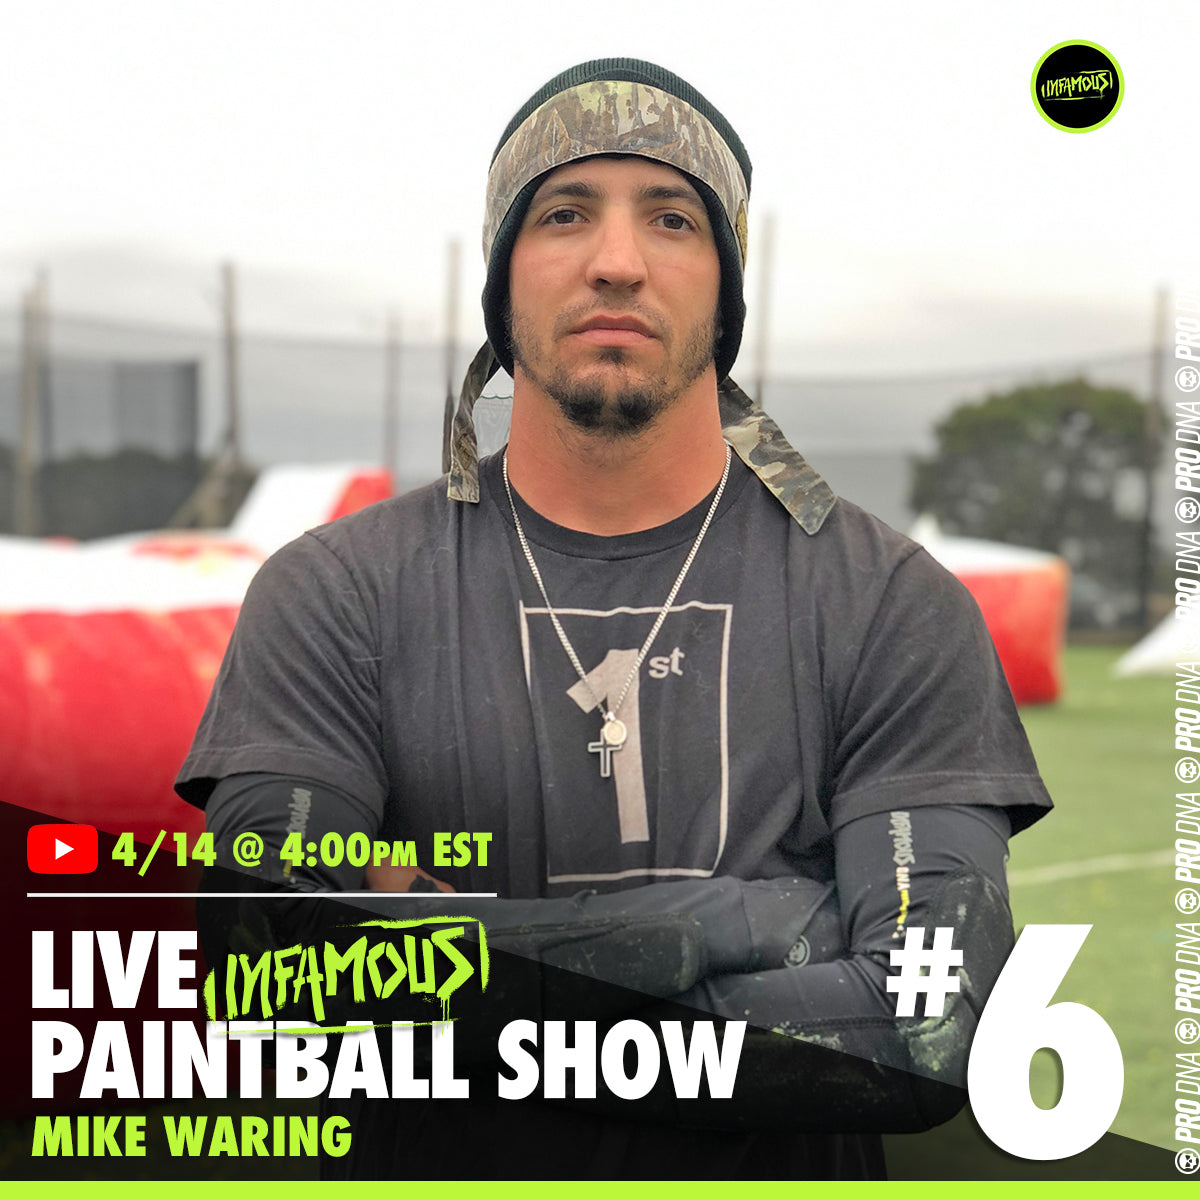 Infamous Paintball Live Show #6 - Mike Waring